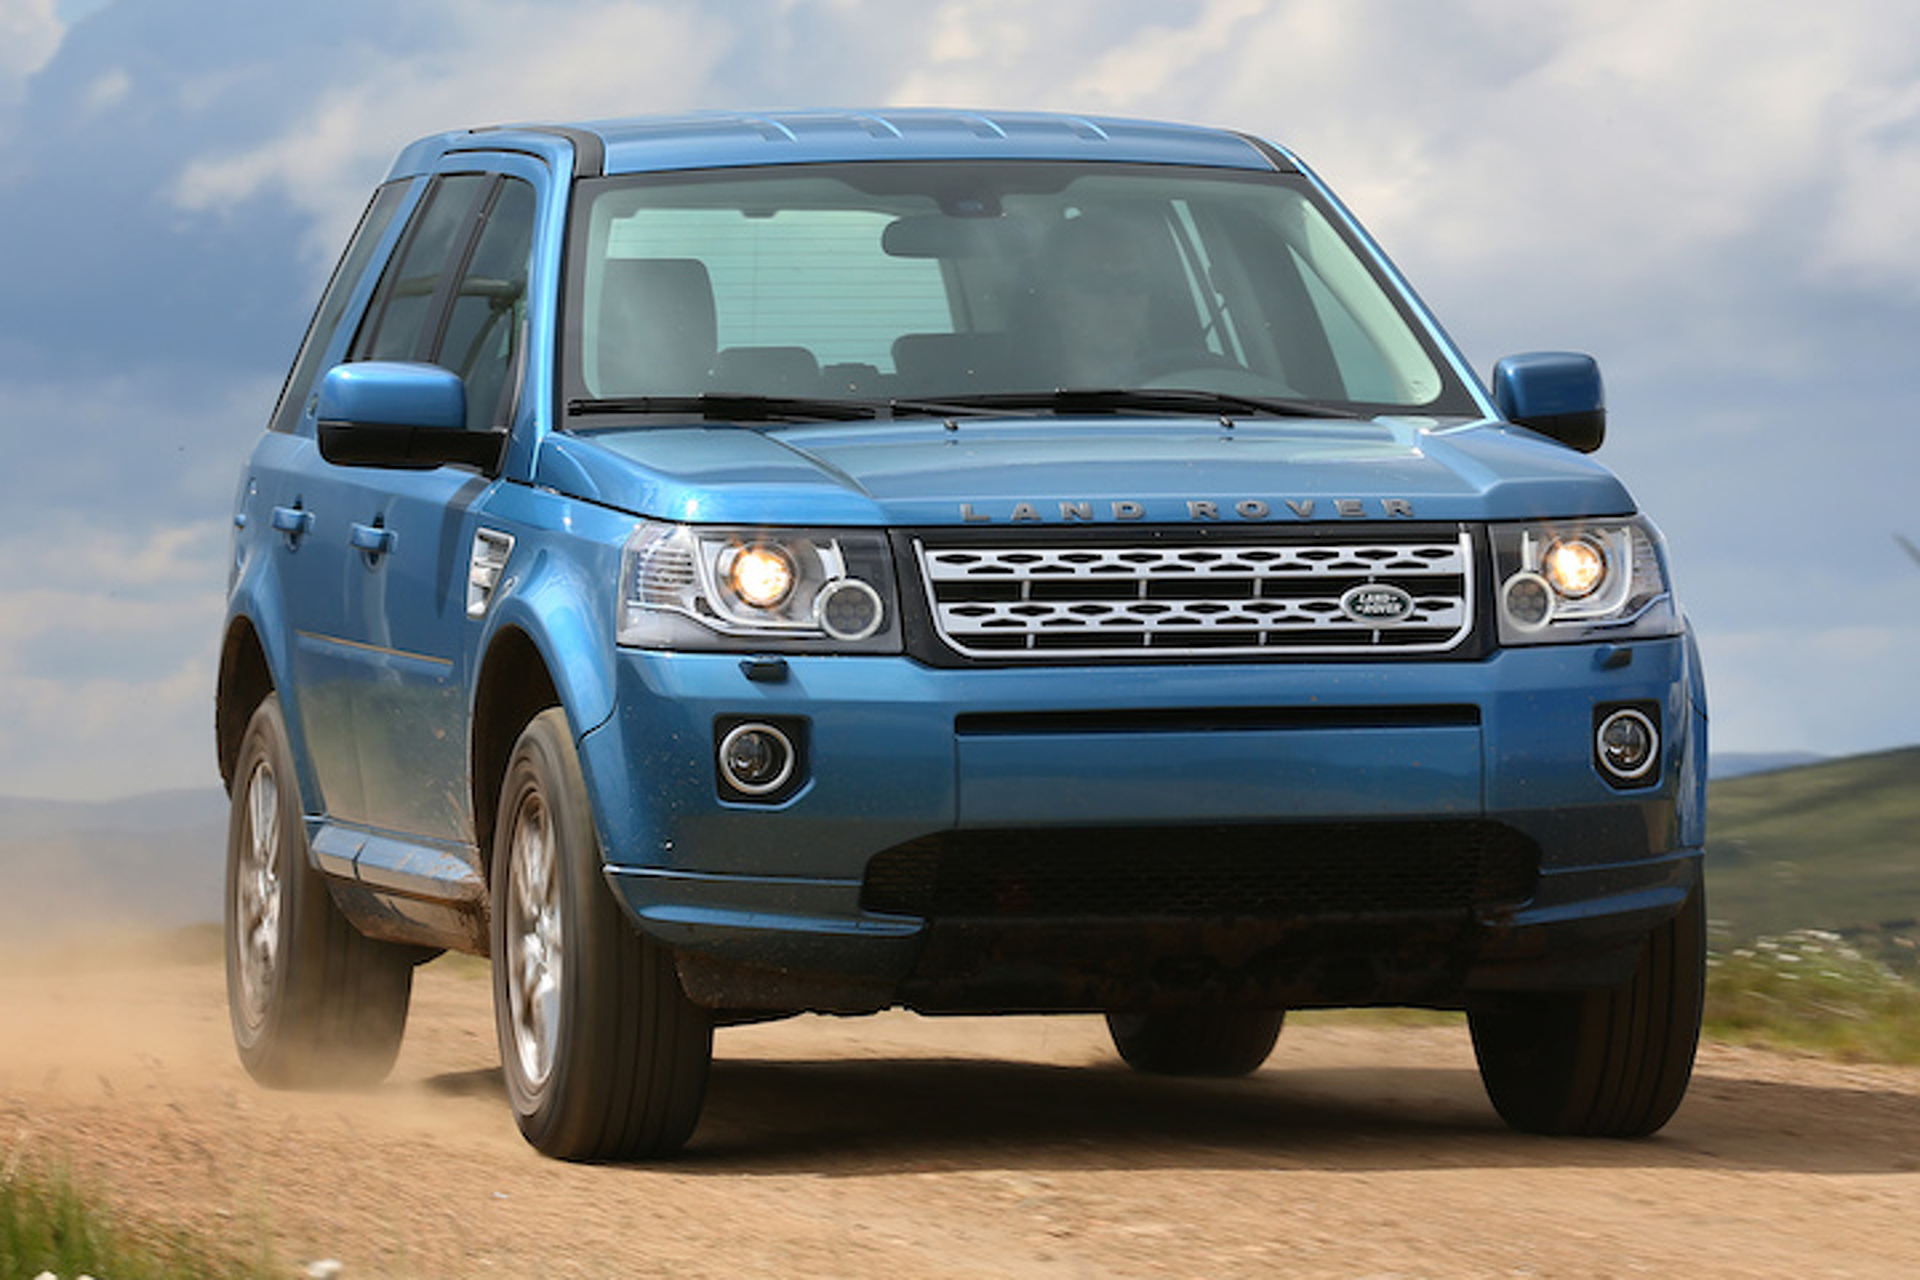 https://icdn-2.motor1.com/images/mgl/oWz8L/s1/land-rover-freelander-to-continue-life-under-tata-nameplate.jpg